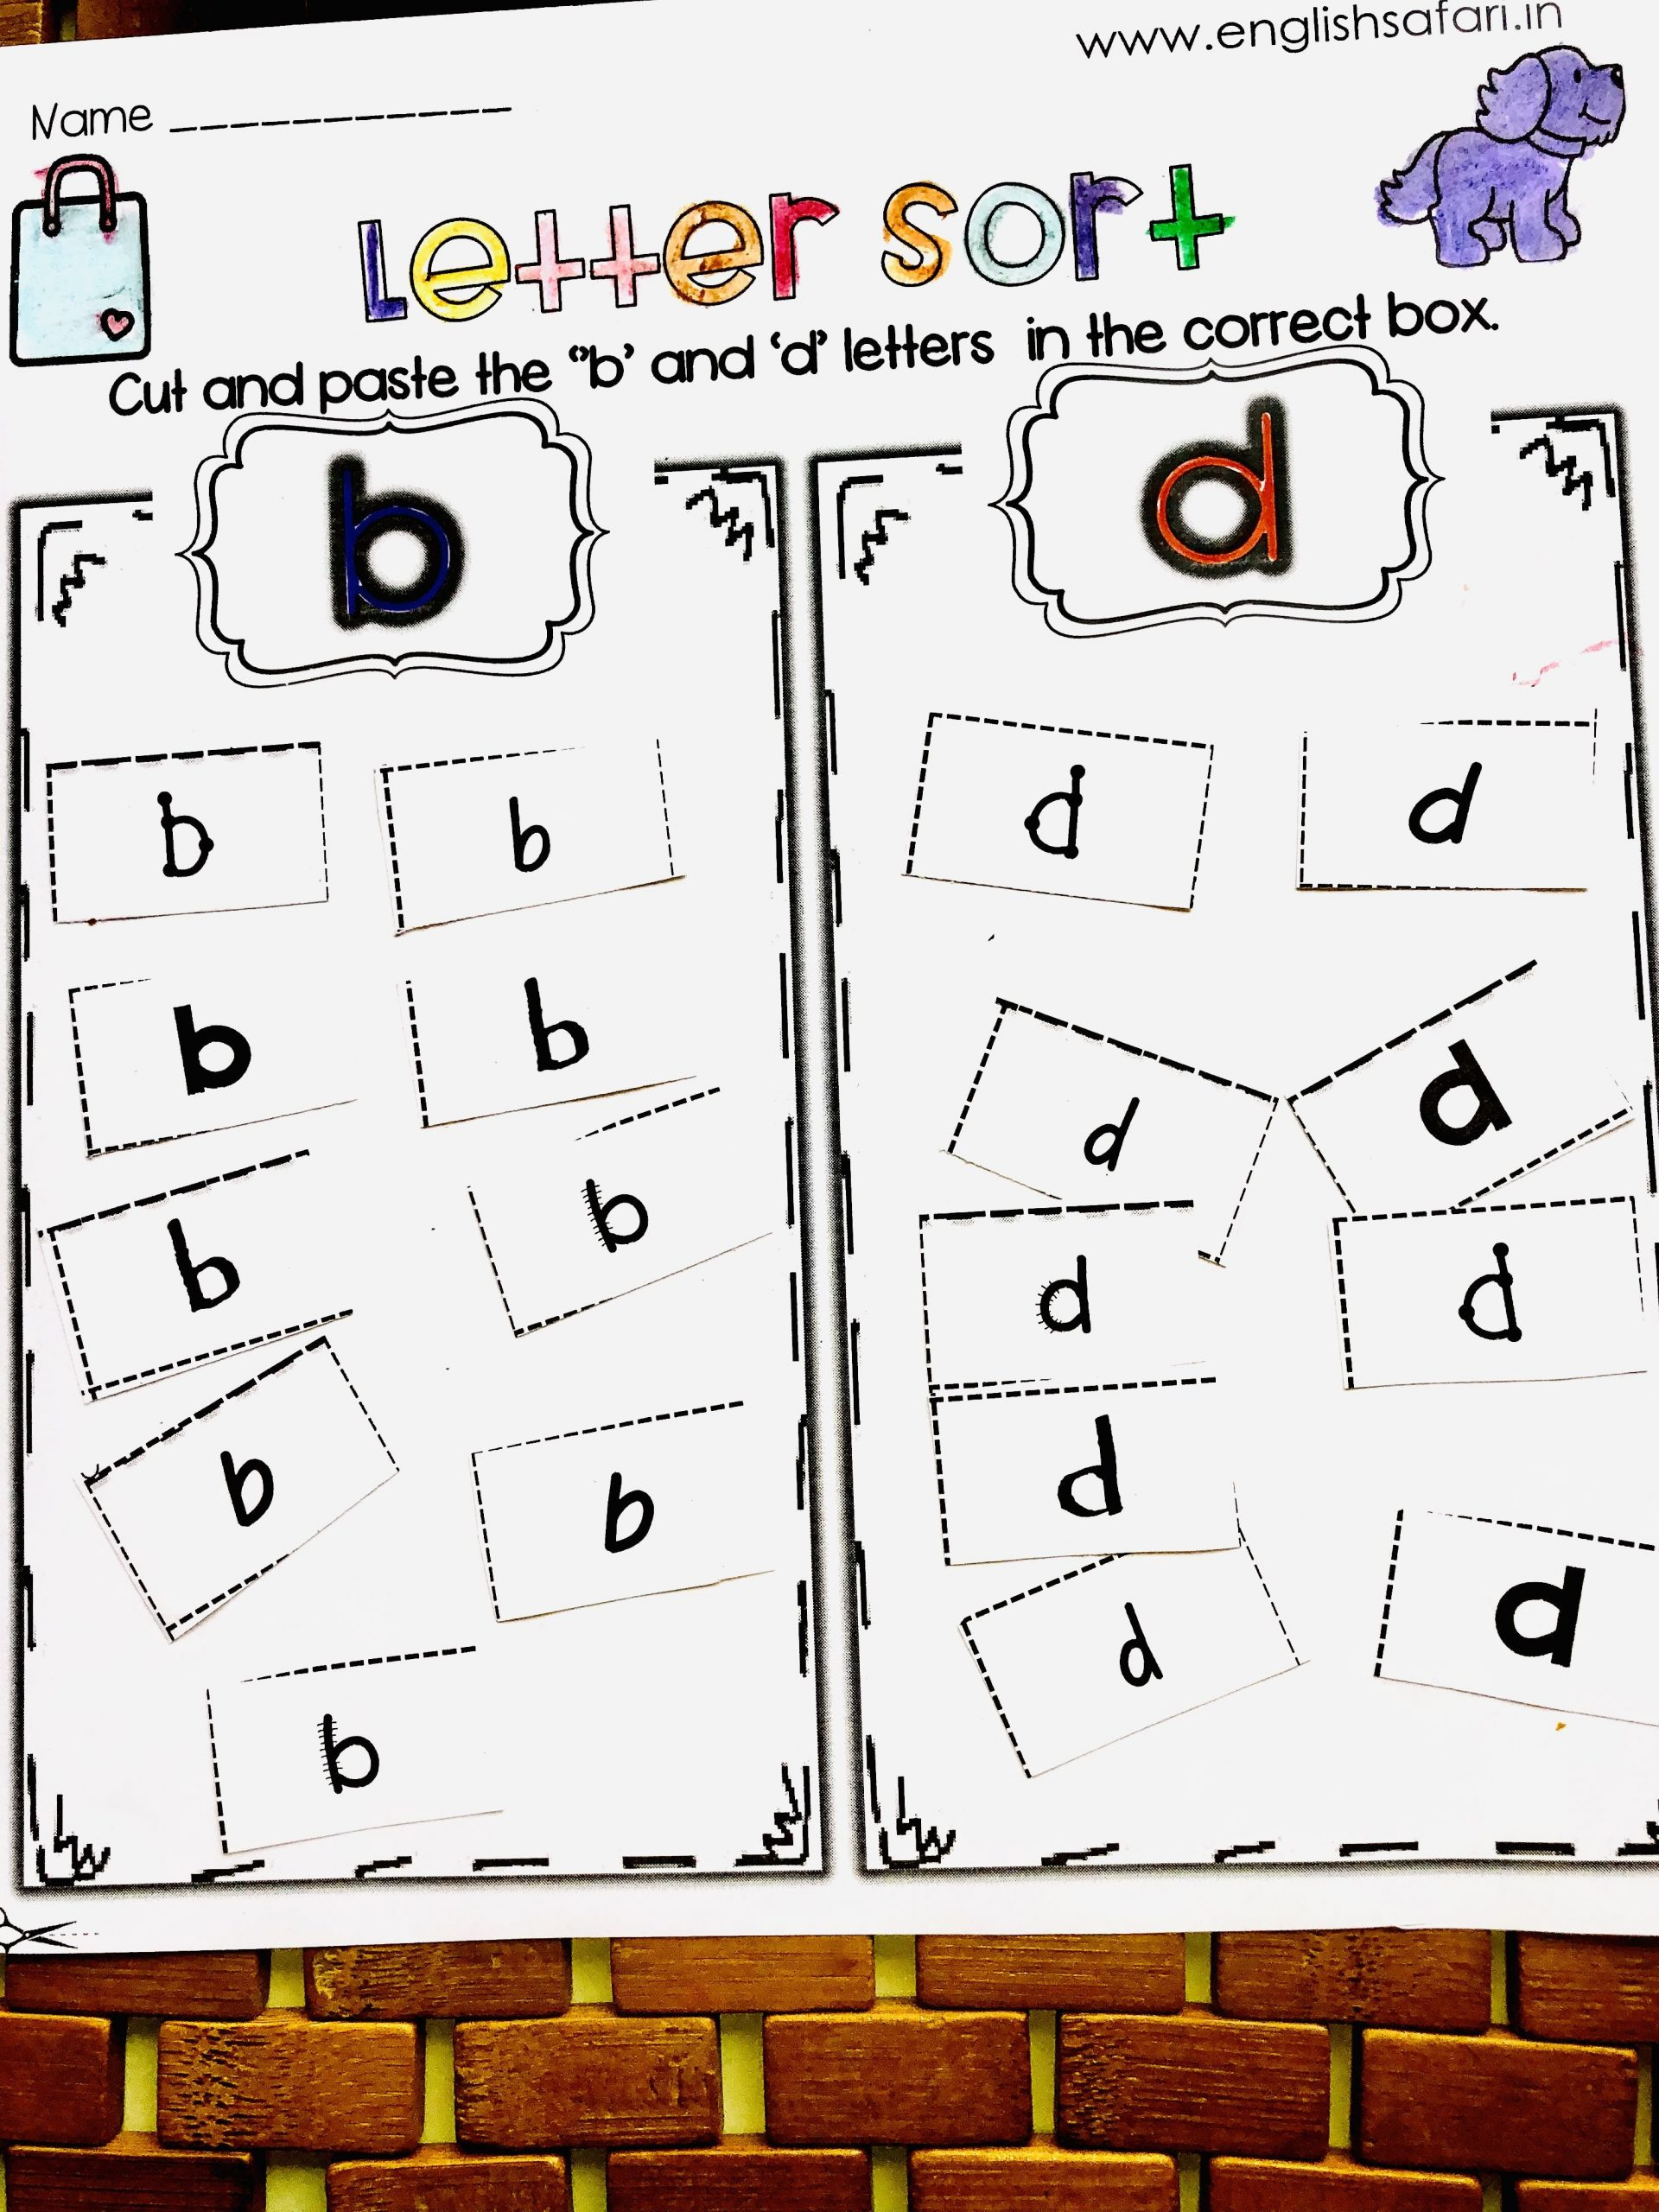 B and D Reversals Worksheets B and D Letter Reversal Packii – English Safari In 2020